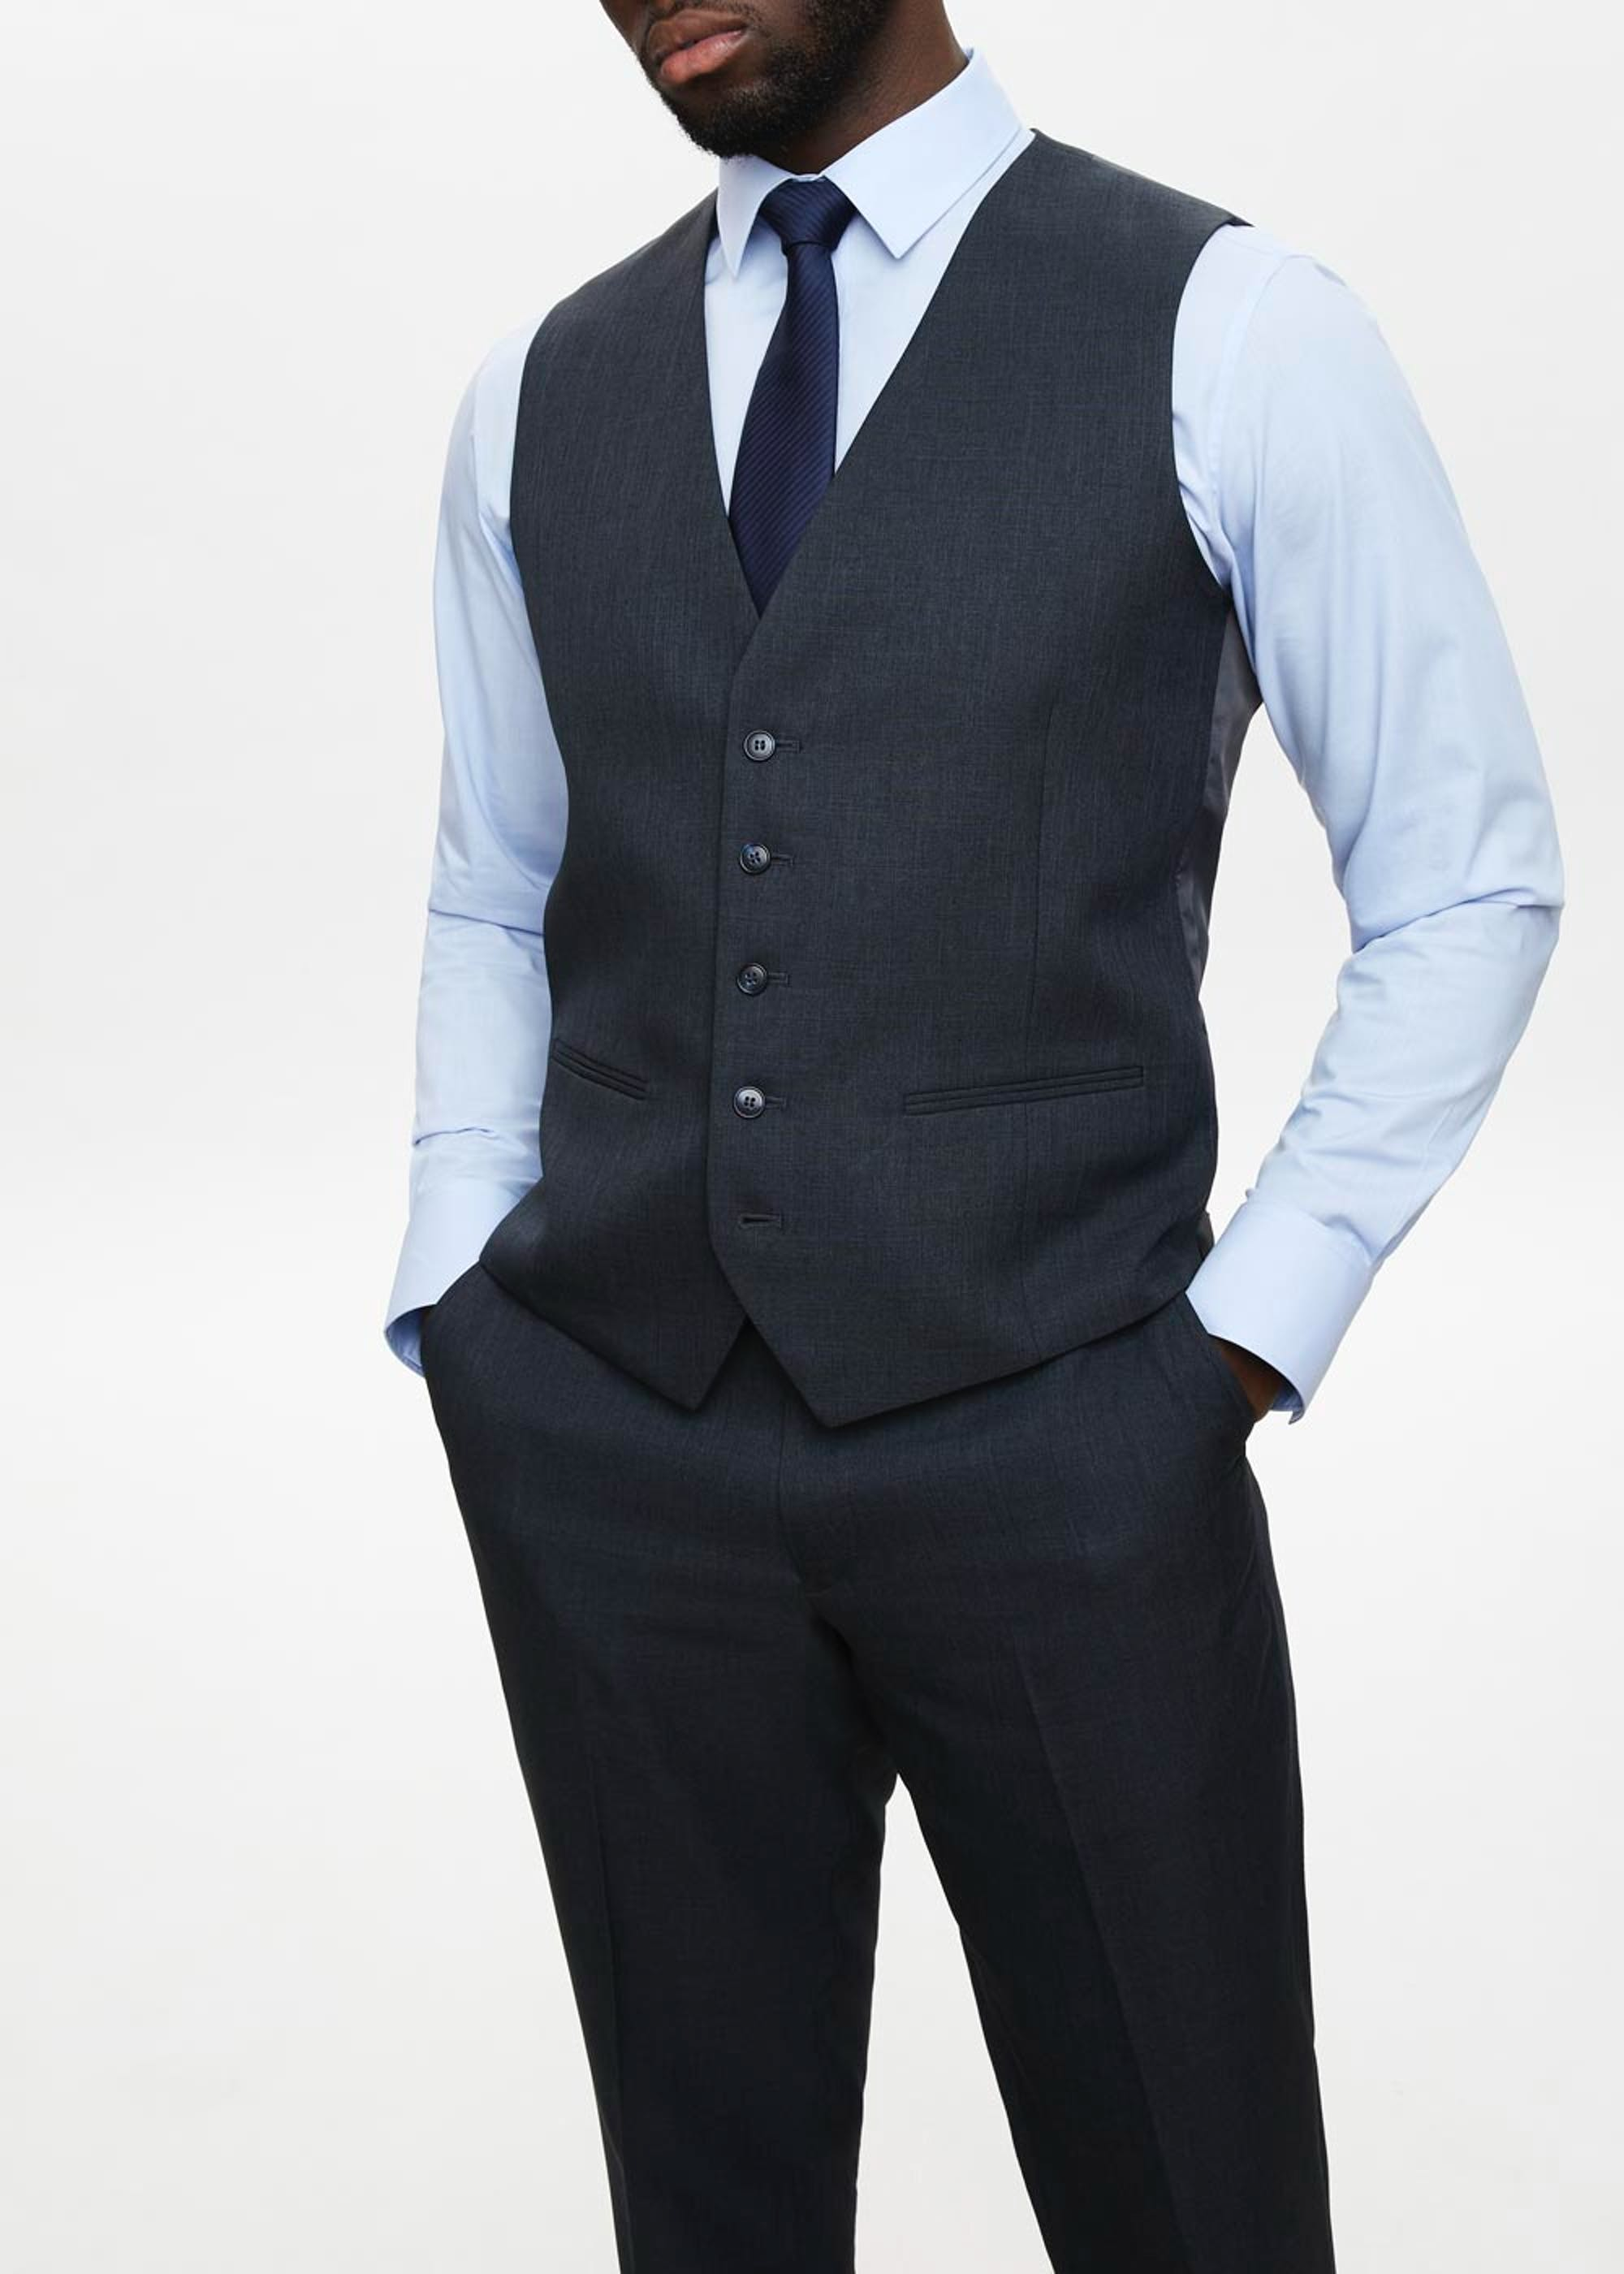 Taylor & Wright Hayes Regular Fit Suit Waistcoat Navy MIyBFT